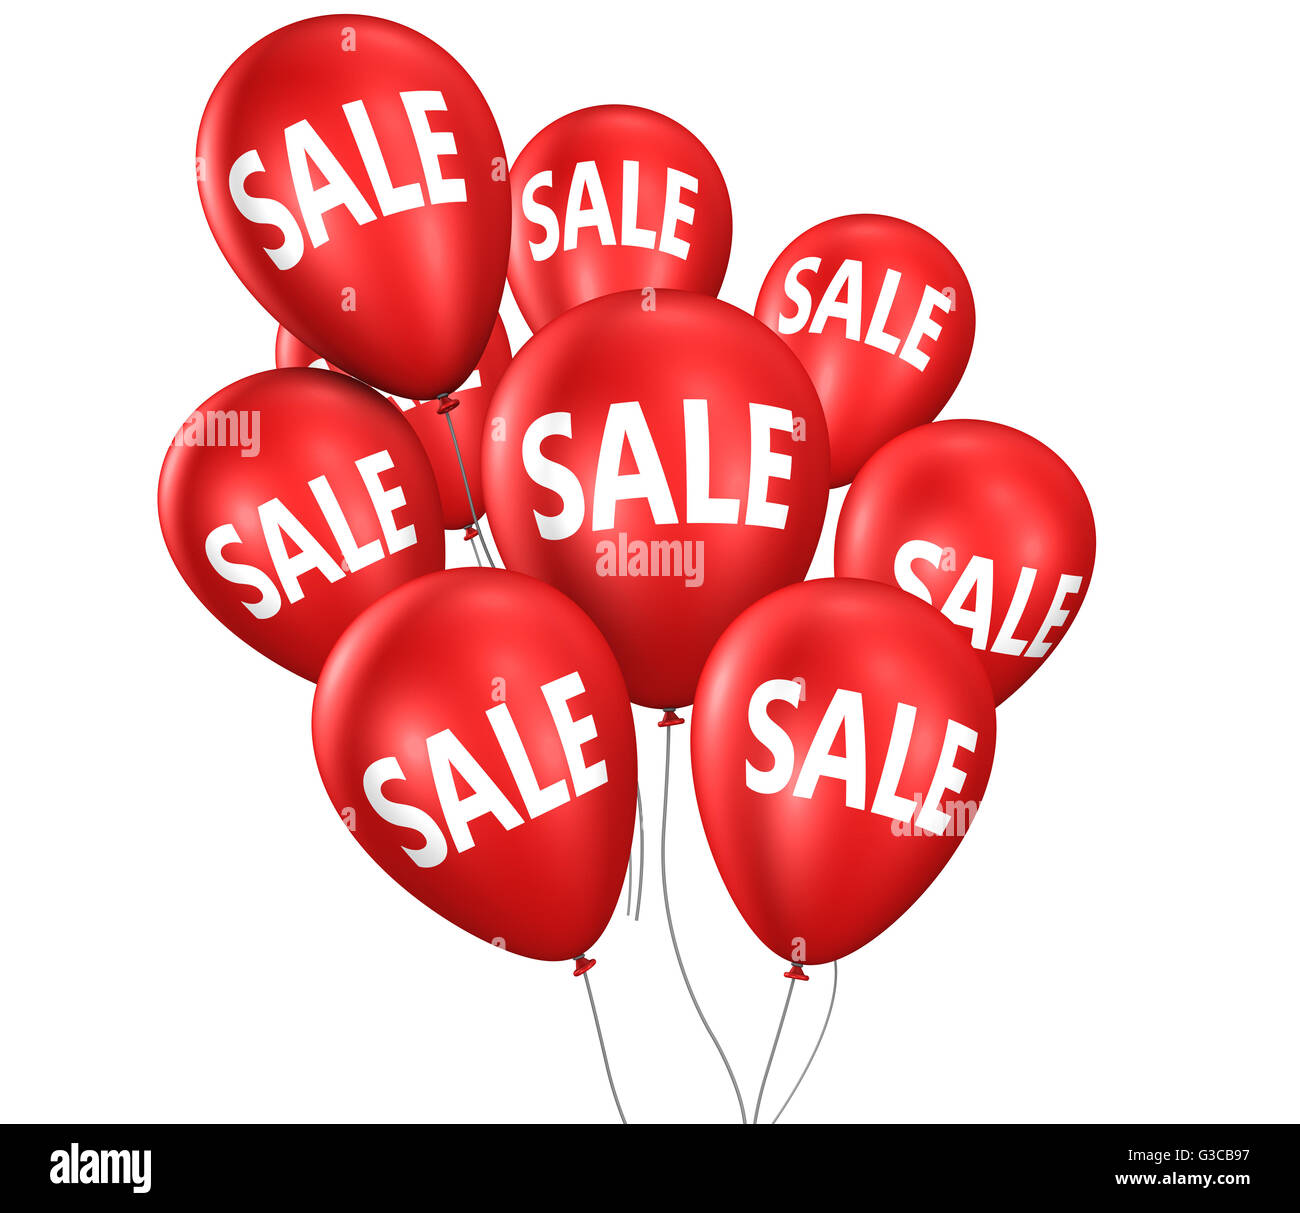 Shopping sales discount and promo with sale sign and text on red ...